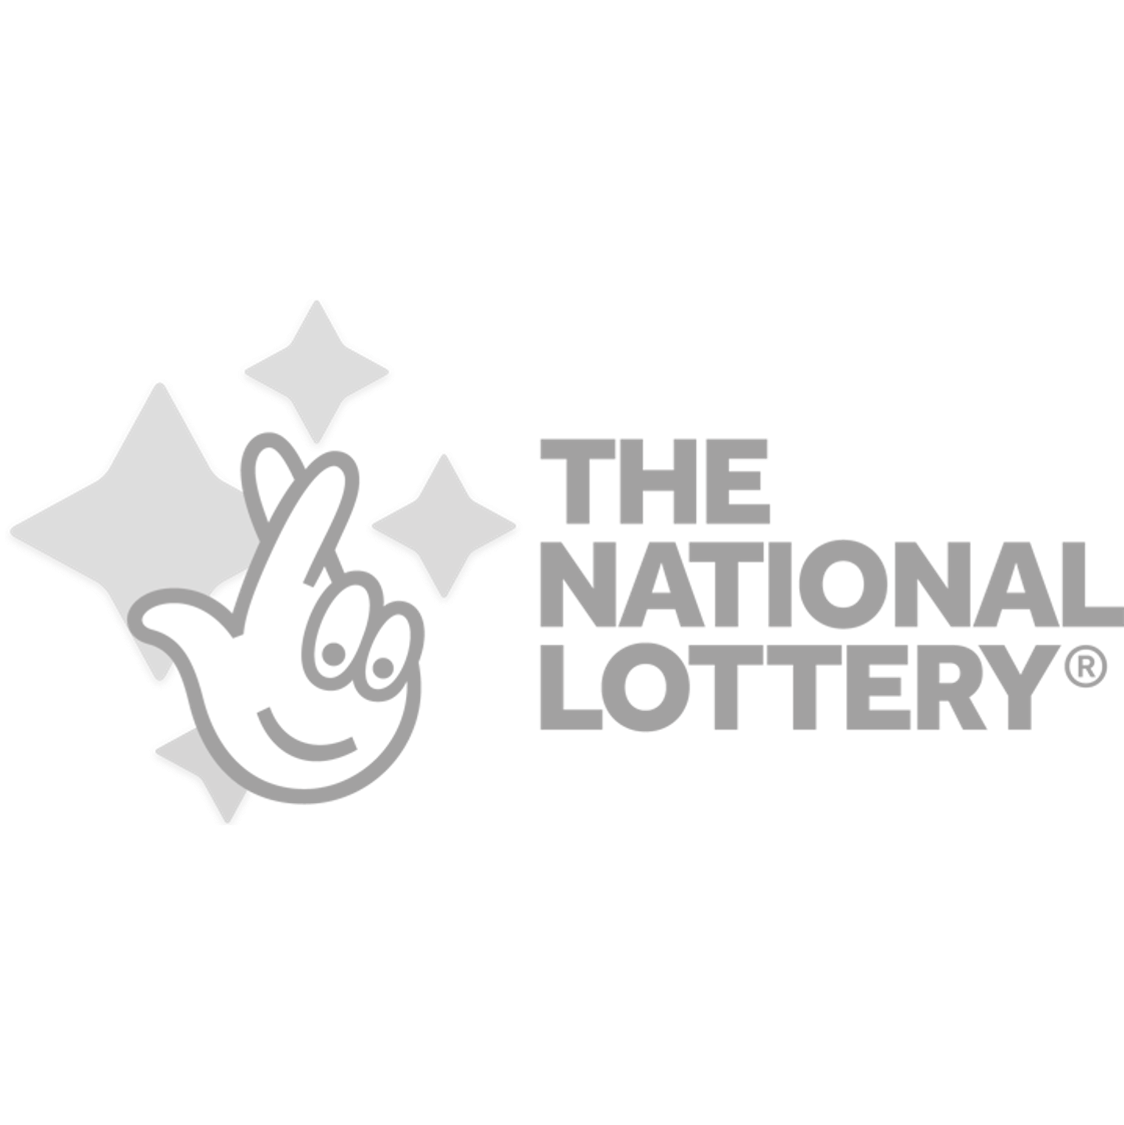 The National Lottery Grey.png